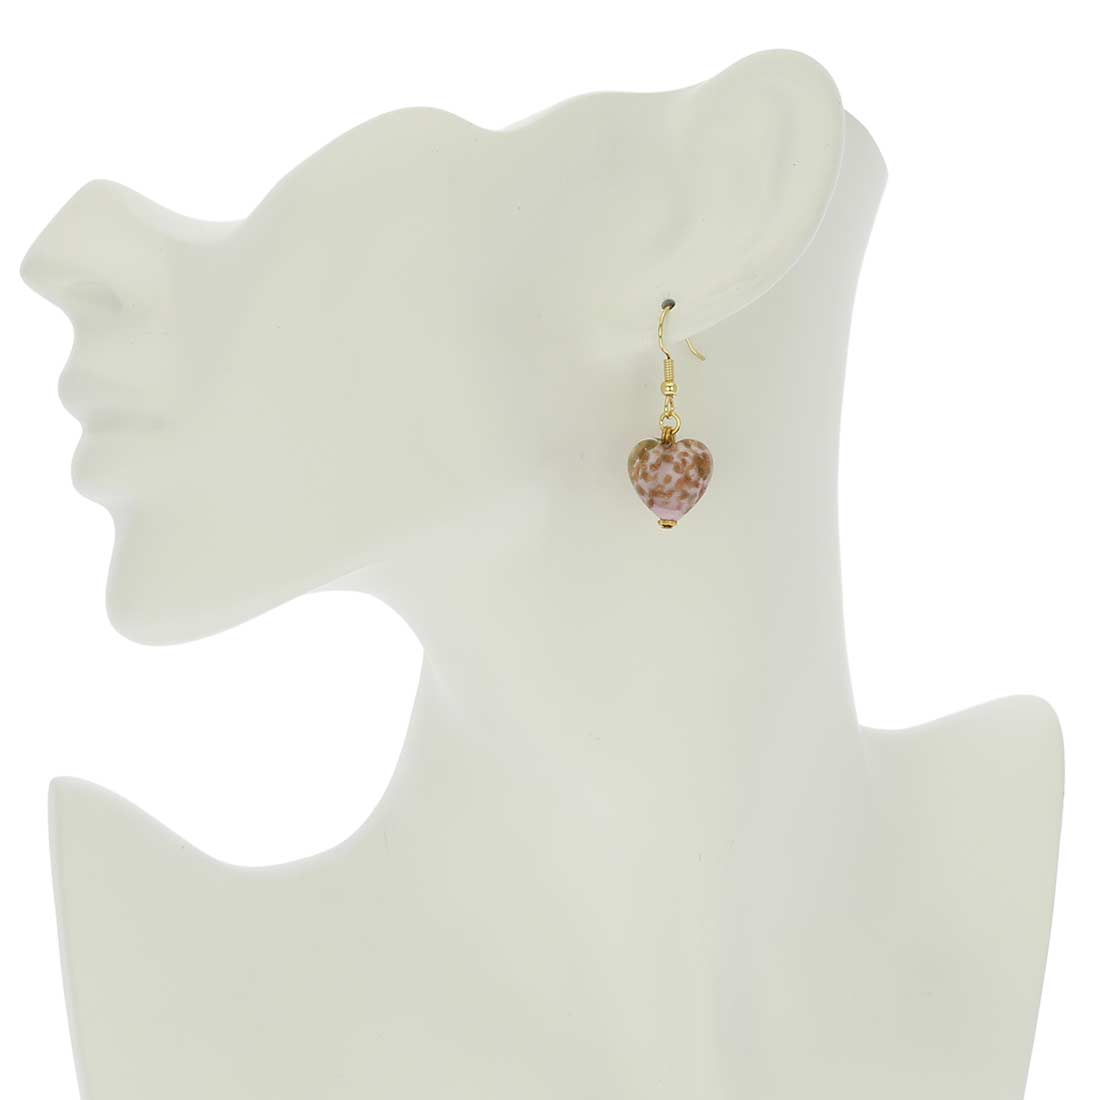 Starlight Hearts Earrings - Rose Pink